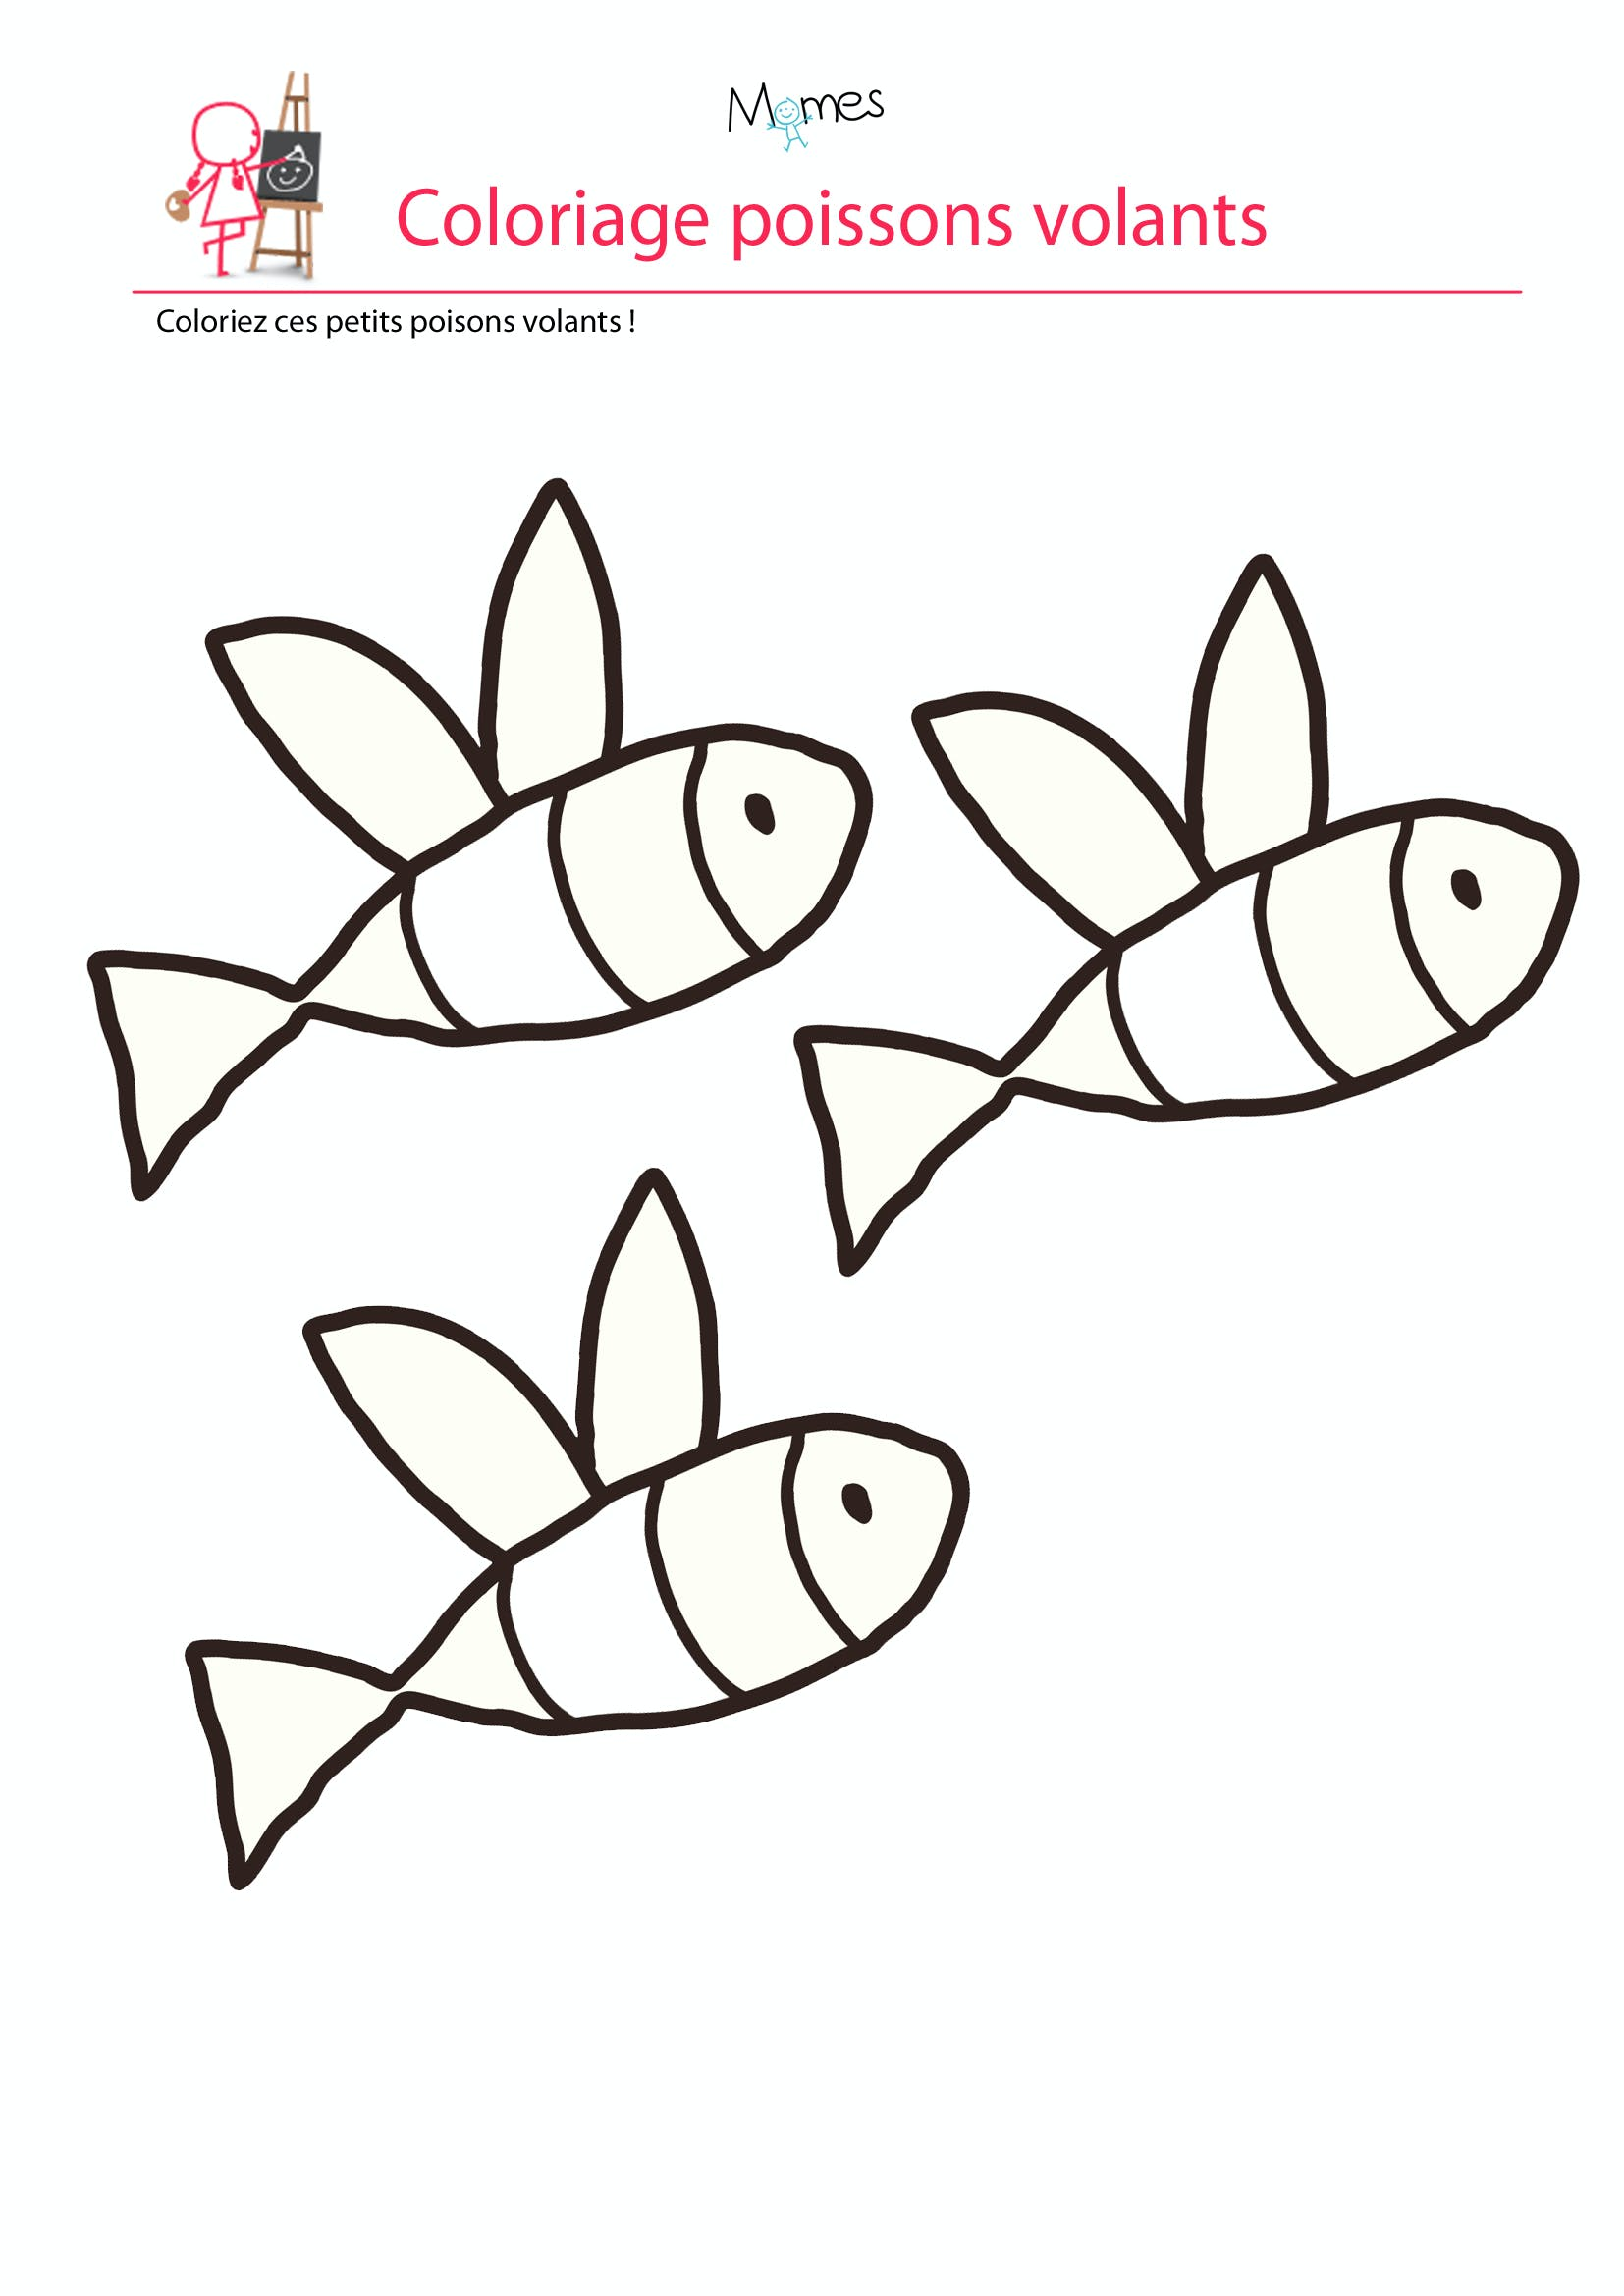 Coloriage poisson d 39 avril les poissons volants - Coloriage avril ...